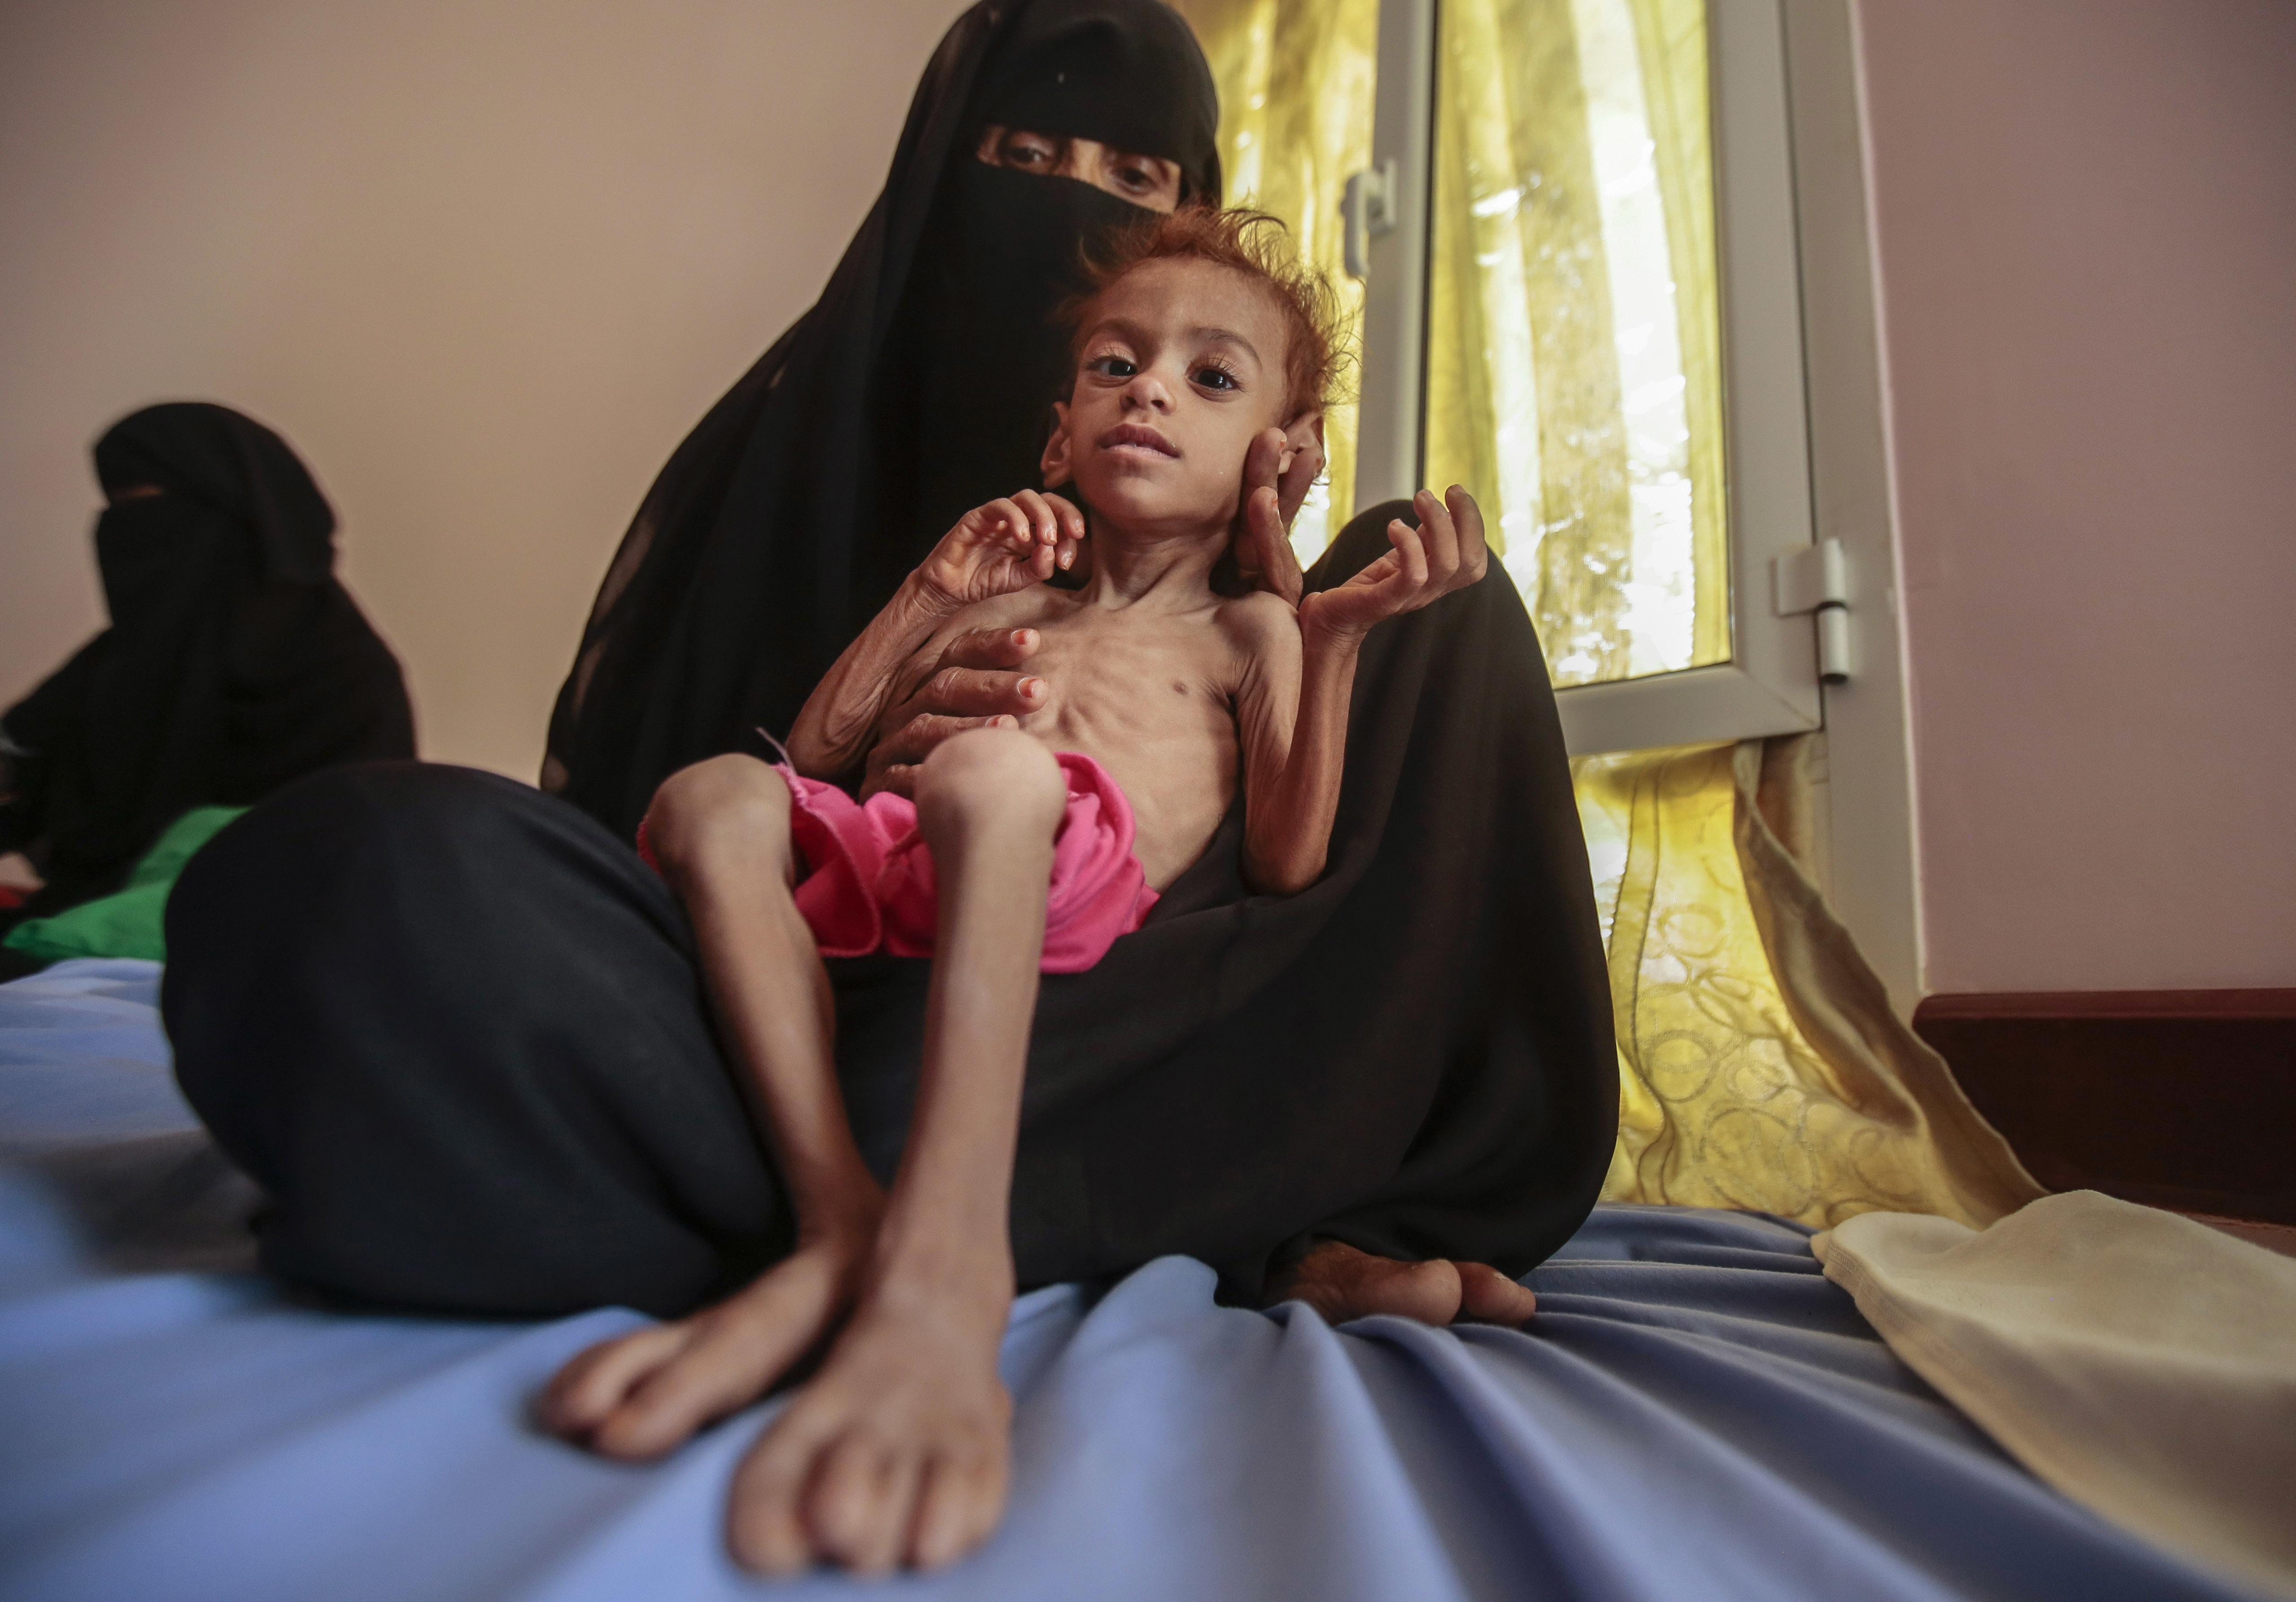 The Guardian view on Yemen's misery: the west is complicit